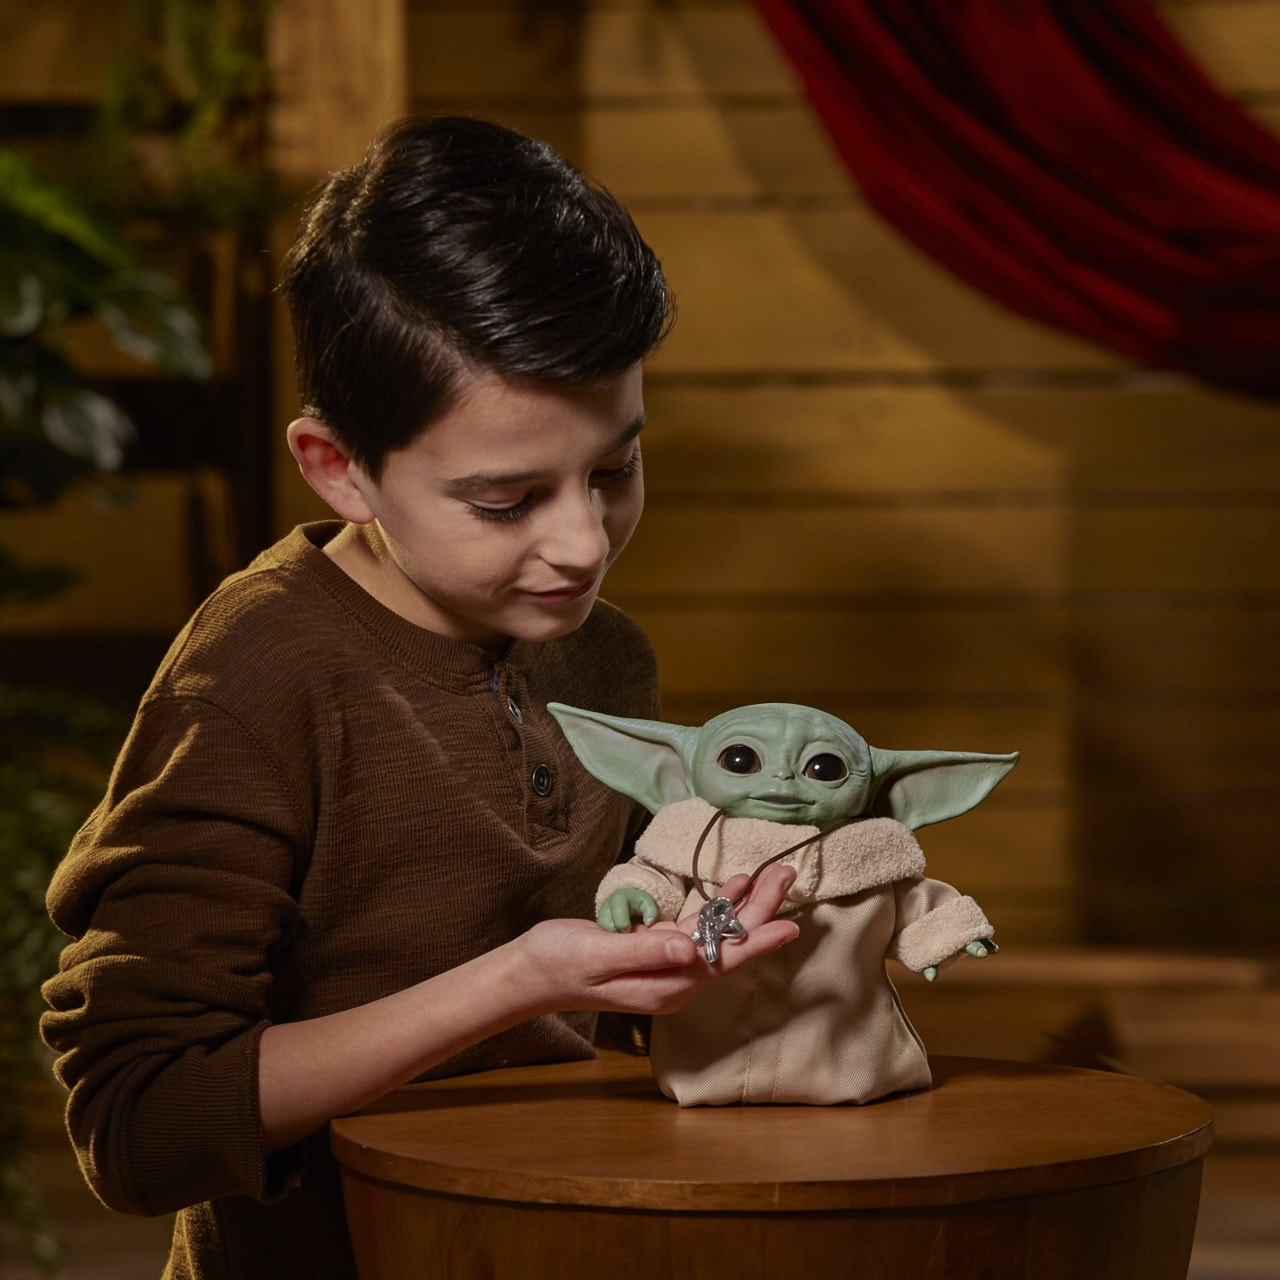 Star Wars: The Child (Baby Yoda) Animatronic Toy - 3